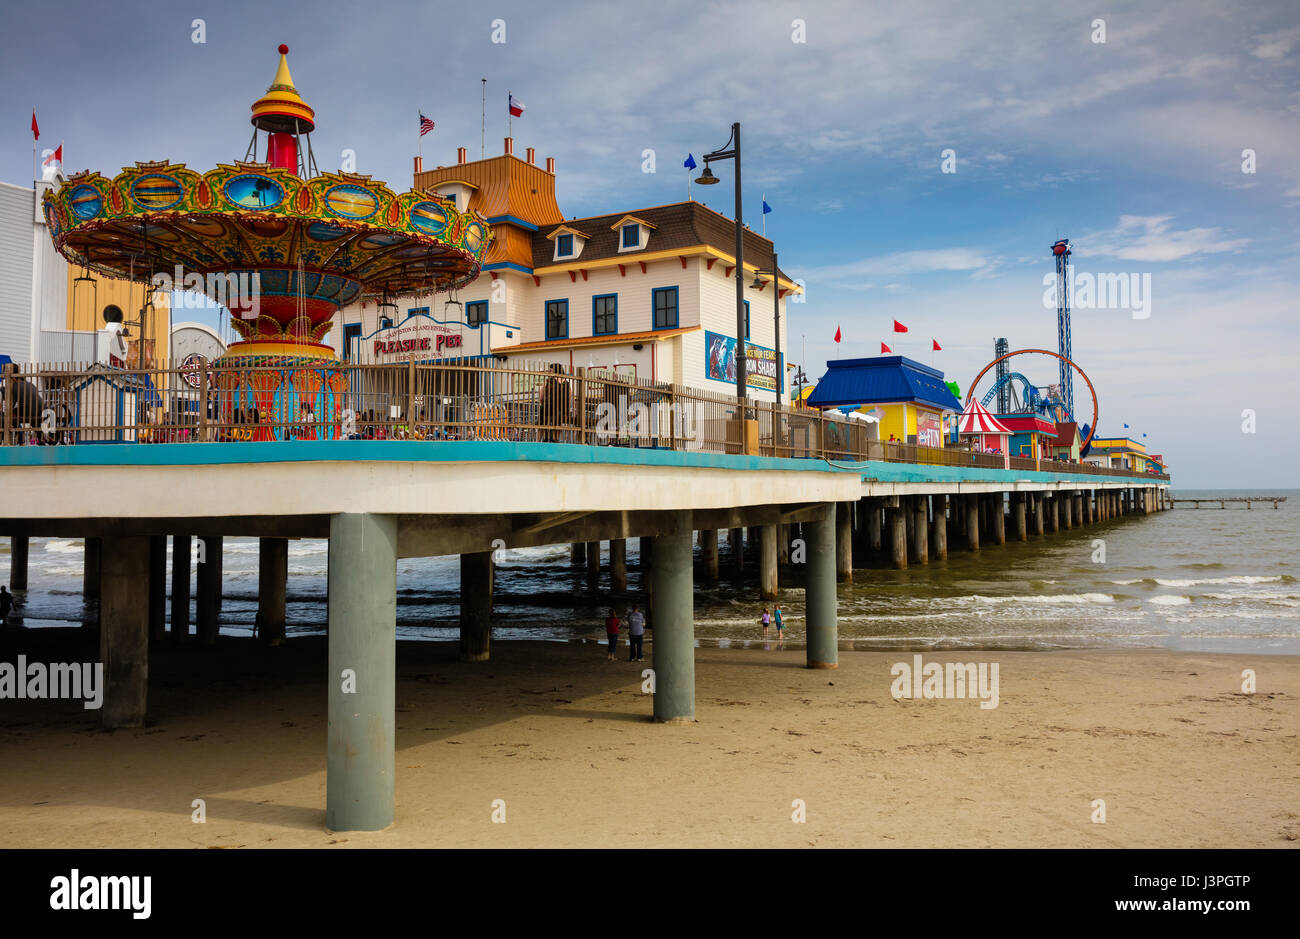 Galveston is a coastal city located on Galveston Island and Pelican Island in the U.S. state of Texas. Named after - Stock Image